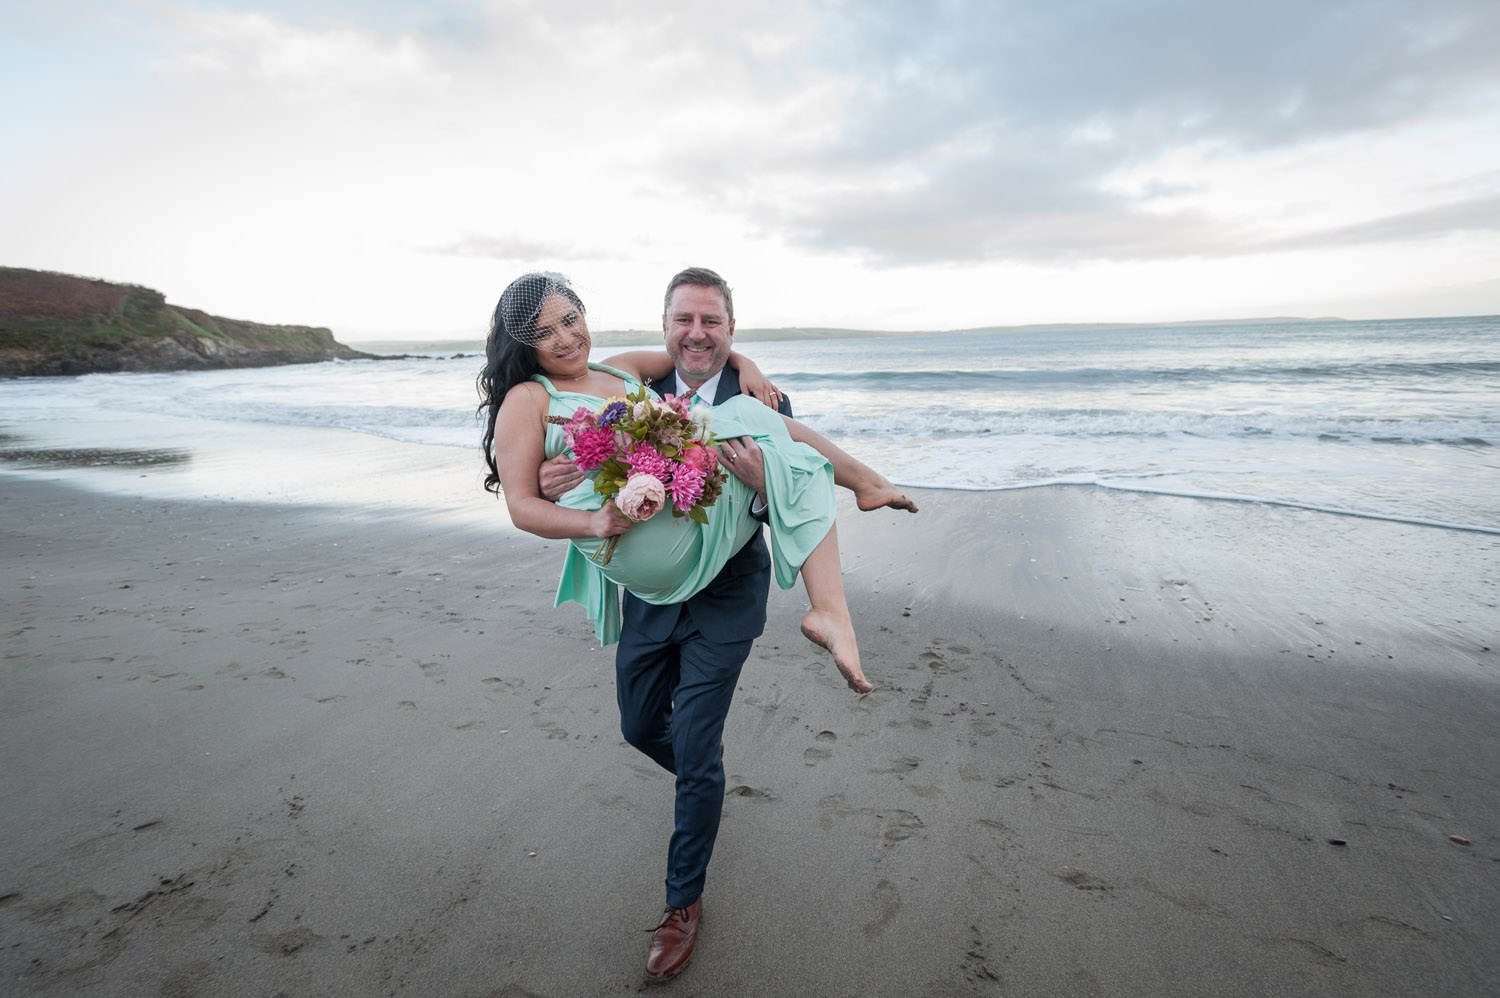 Dermot Sullivan, Cork Wedding Photographer, Wedding Photography Cork, Award Winning Wedding Photography, West Cork Wedding Photography, Cork Wedding Photos, Clonakilty Wedding Photographer, Best Prices, Packages, Pictures, Best Wedding Photos,